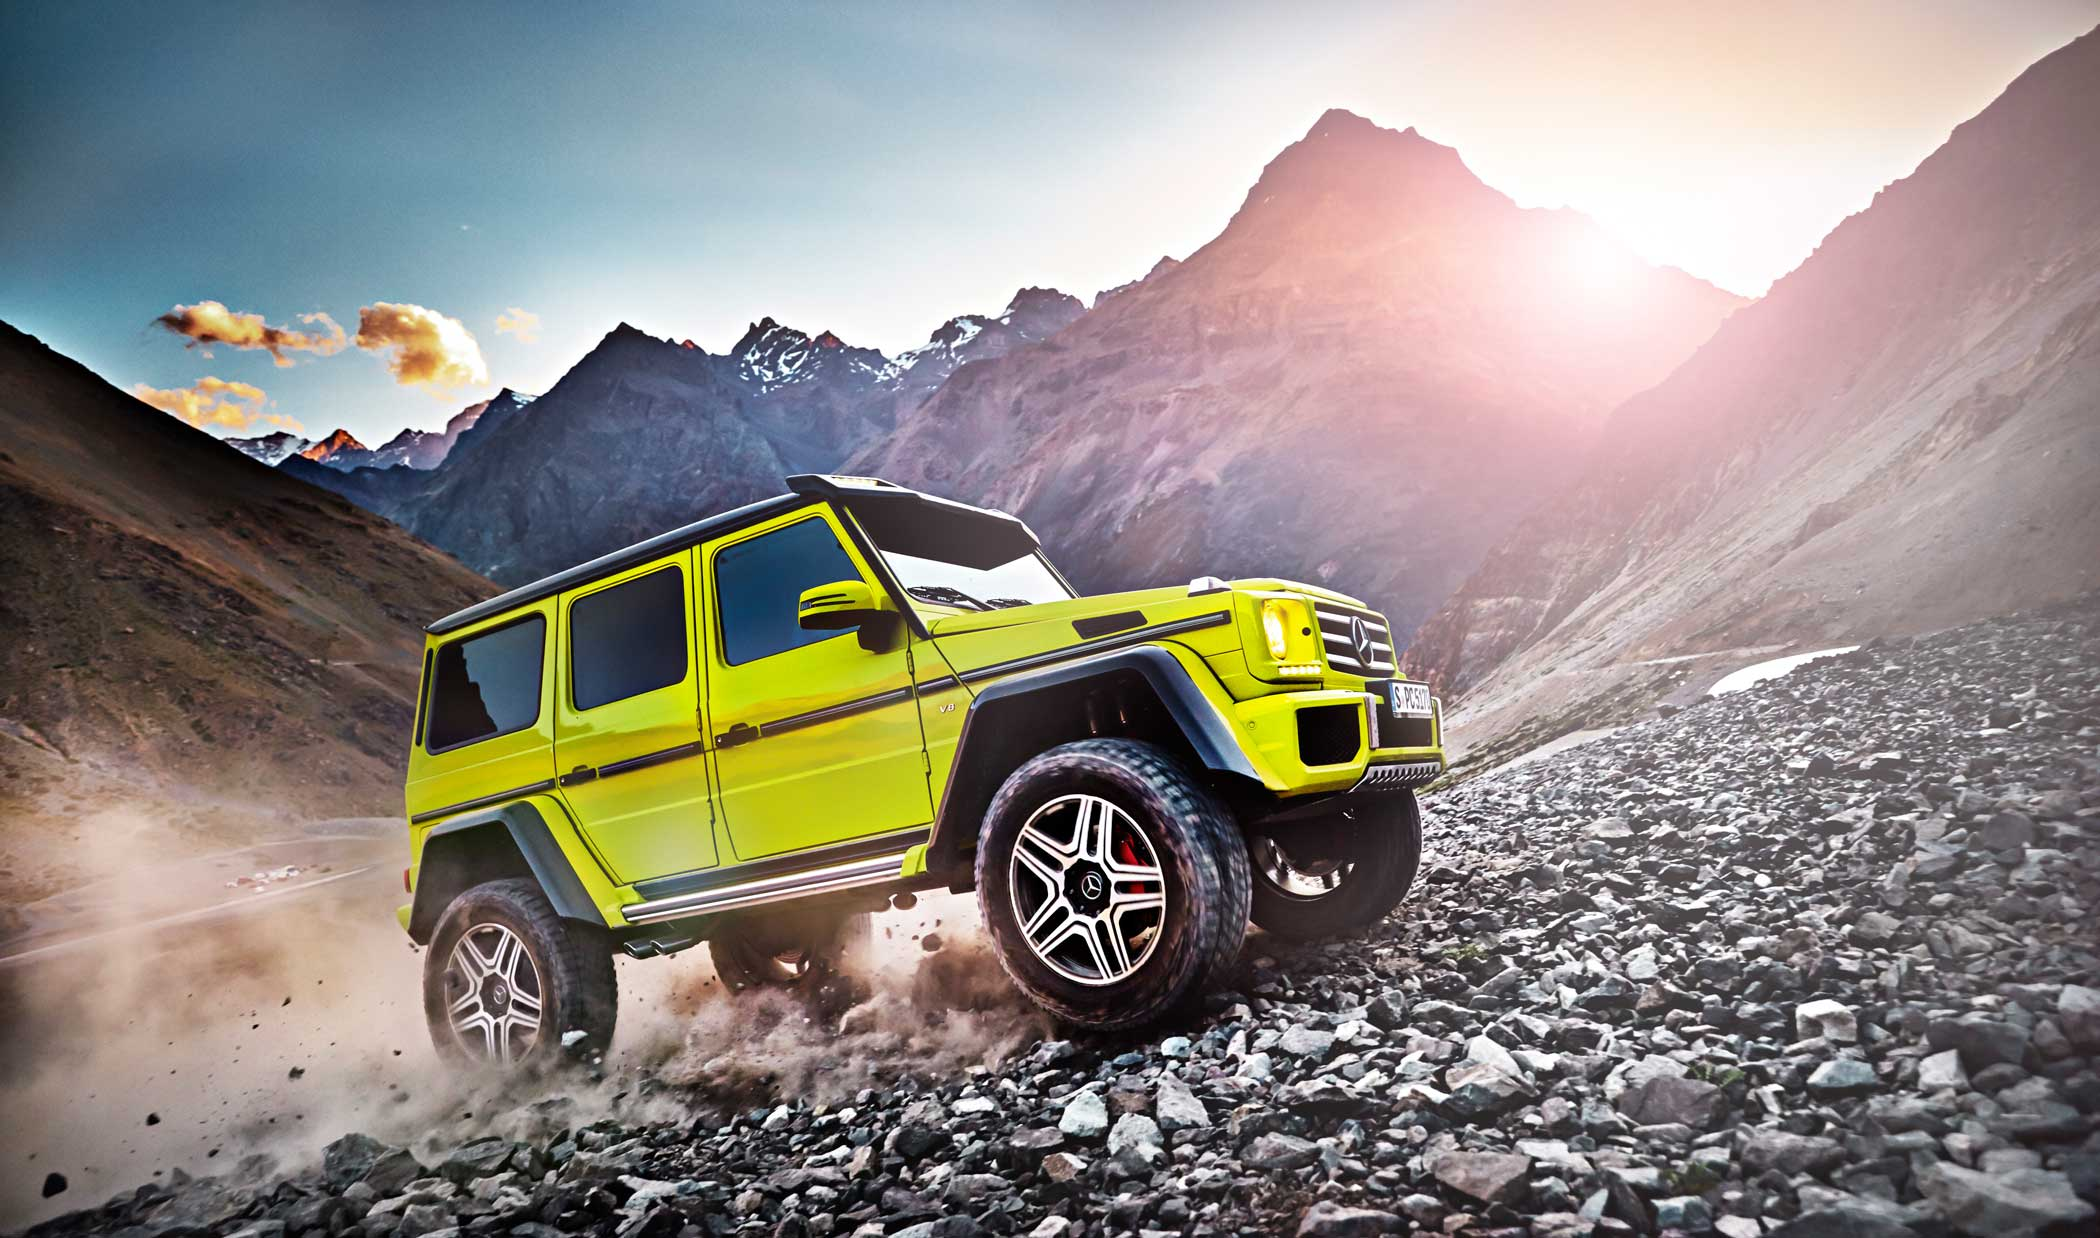 Mercedes-Benz G500 4x42. The preferred ride of oligarchs and dictators is getting supreme off-roading upgrades.